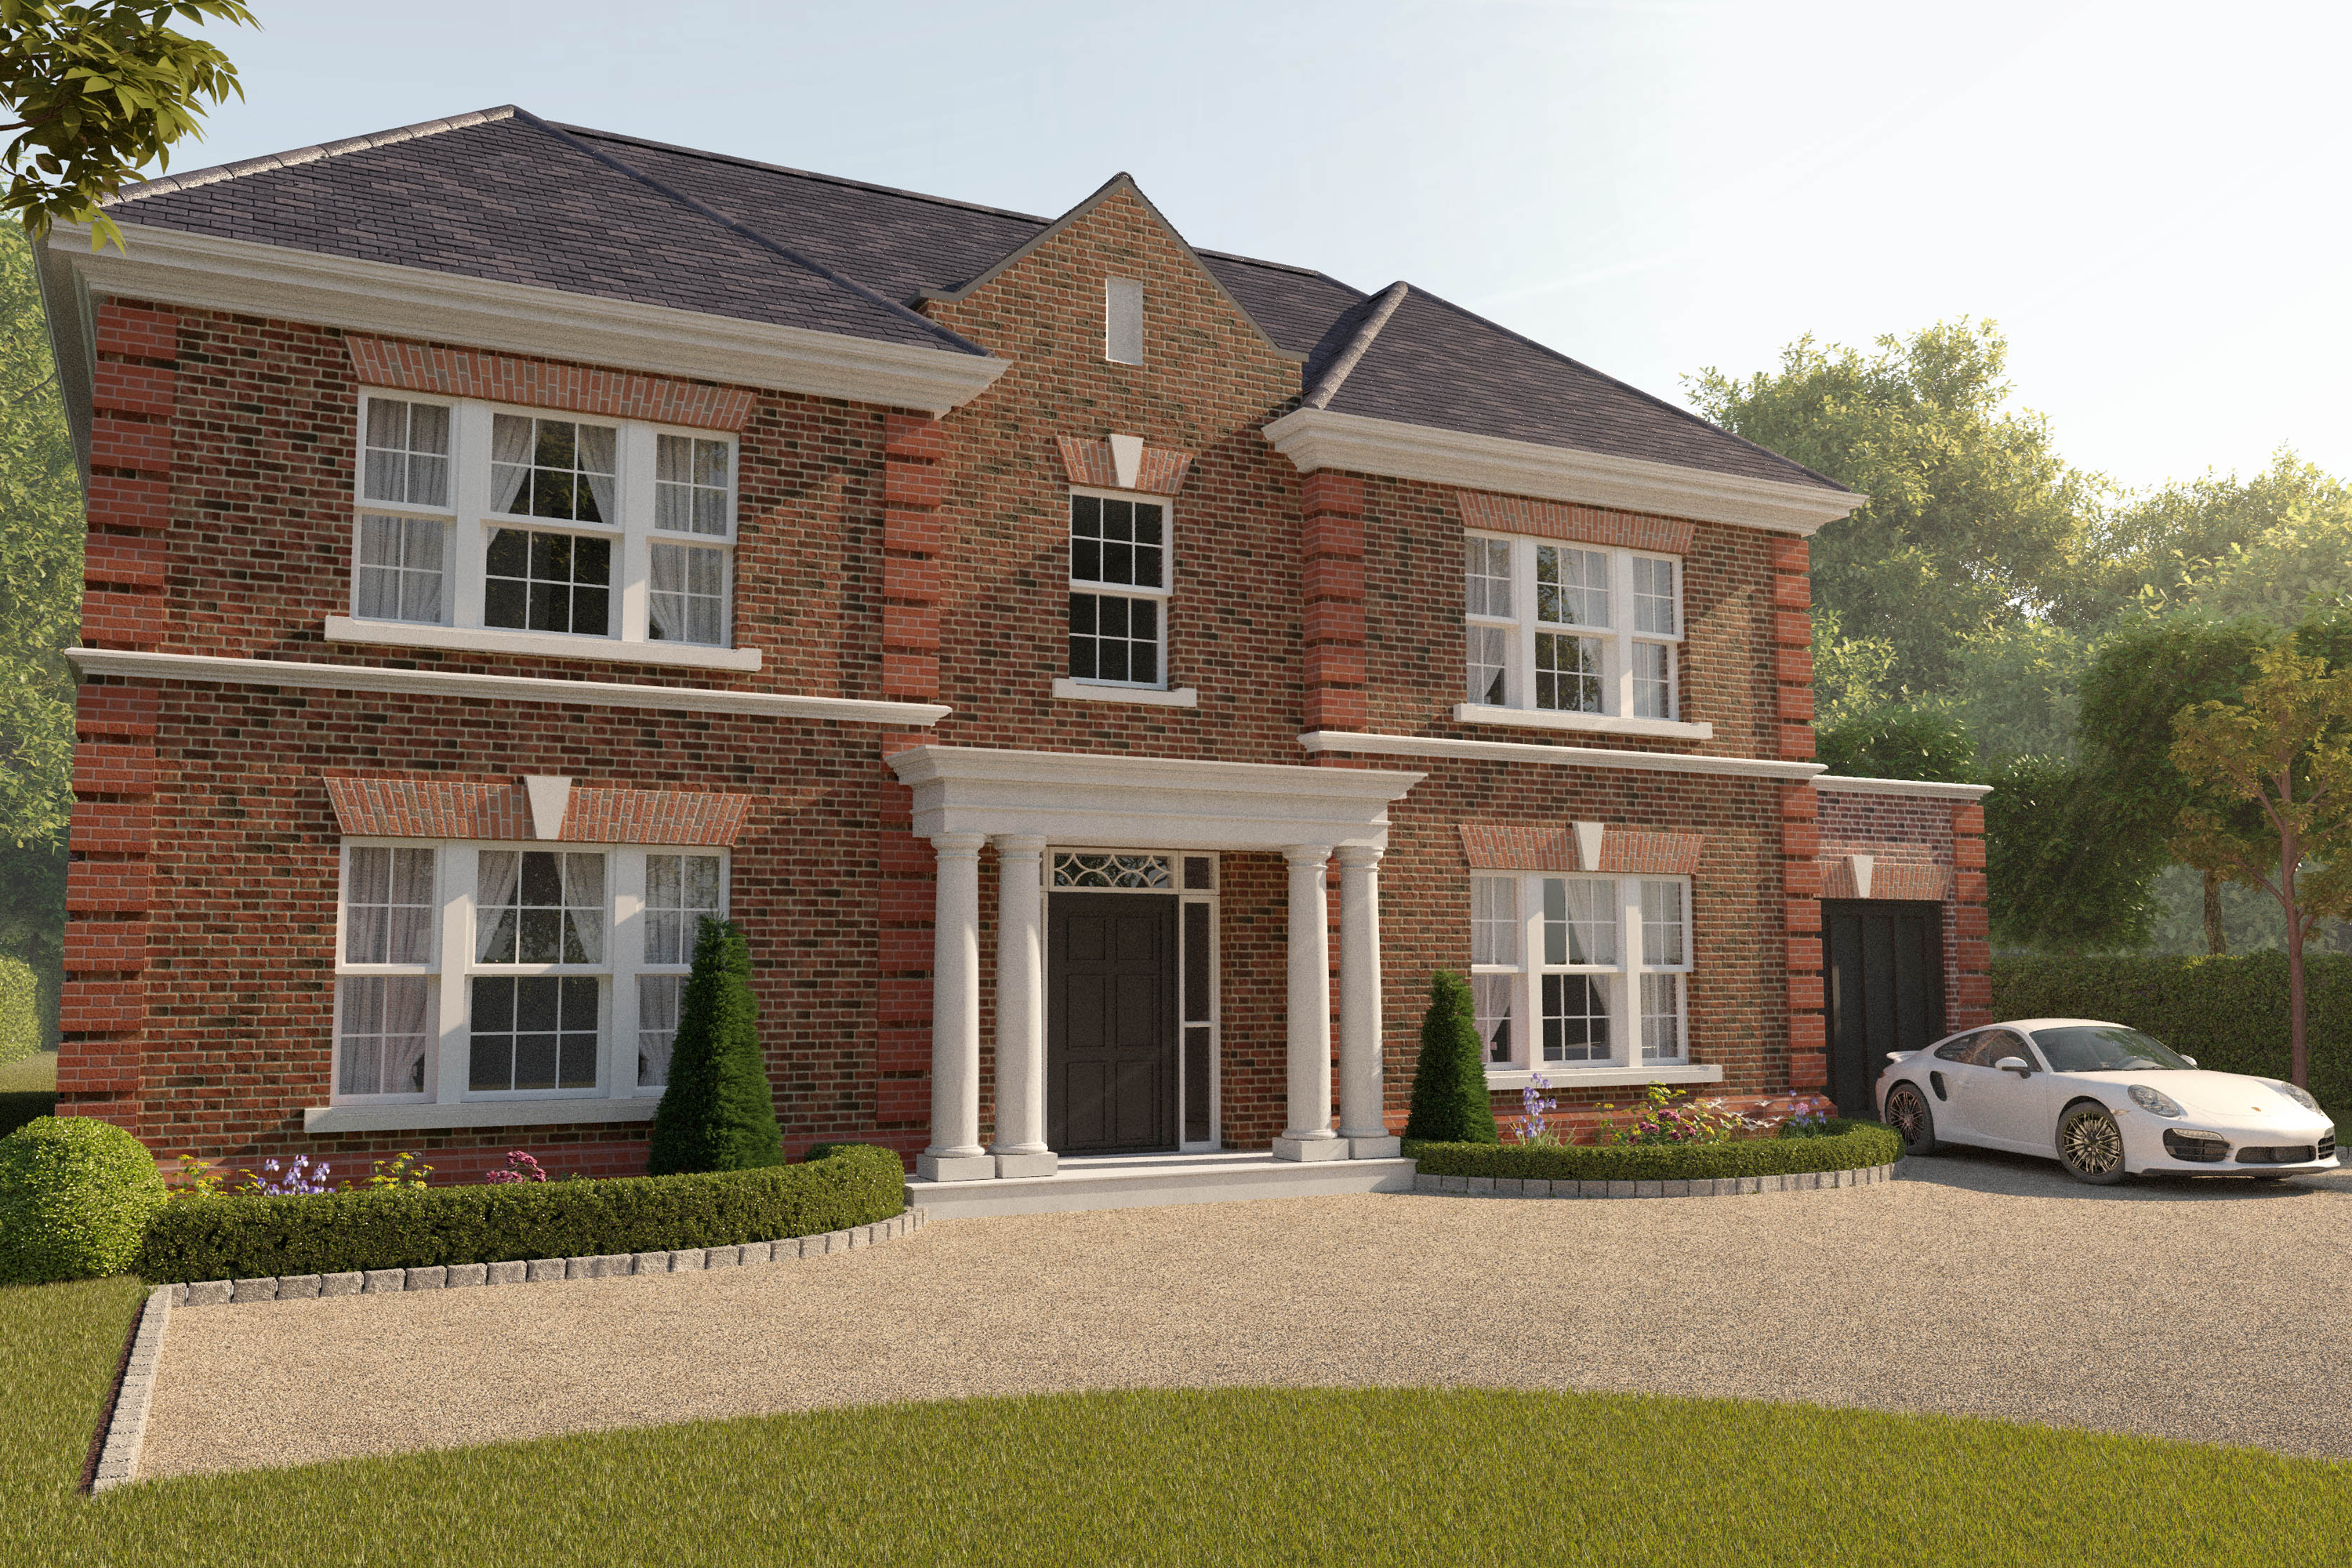 For Sale: Alderney House, Oxshott, Surrey